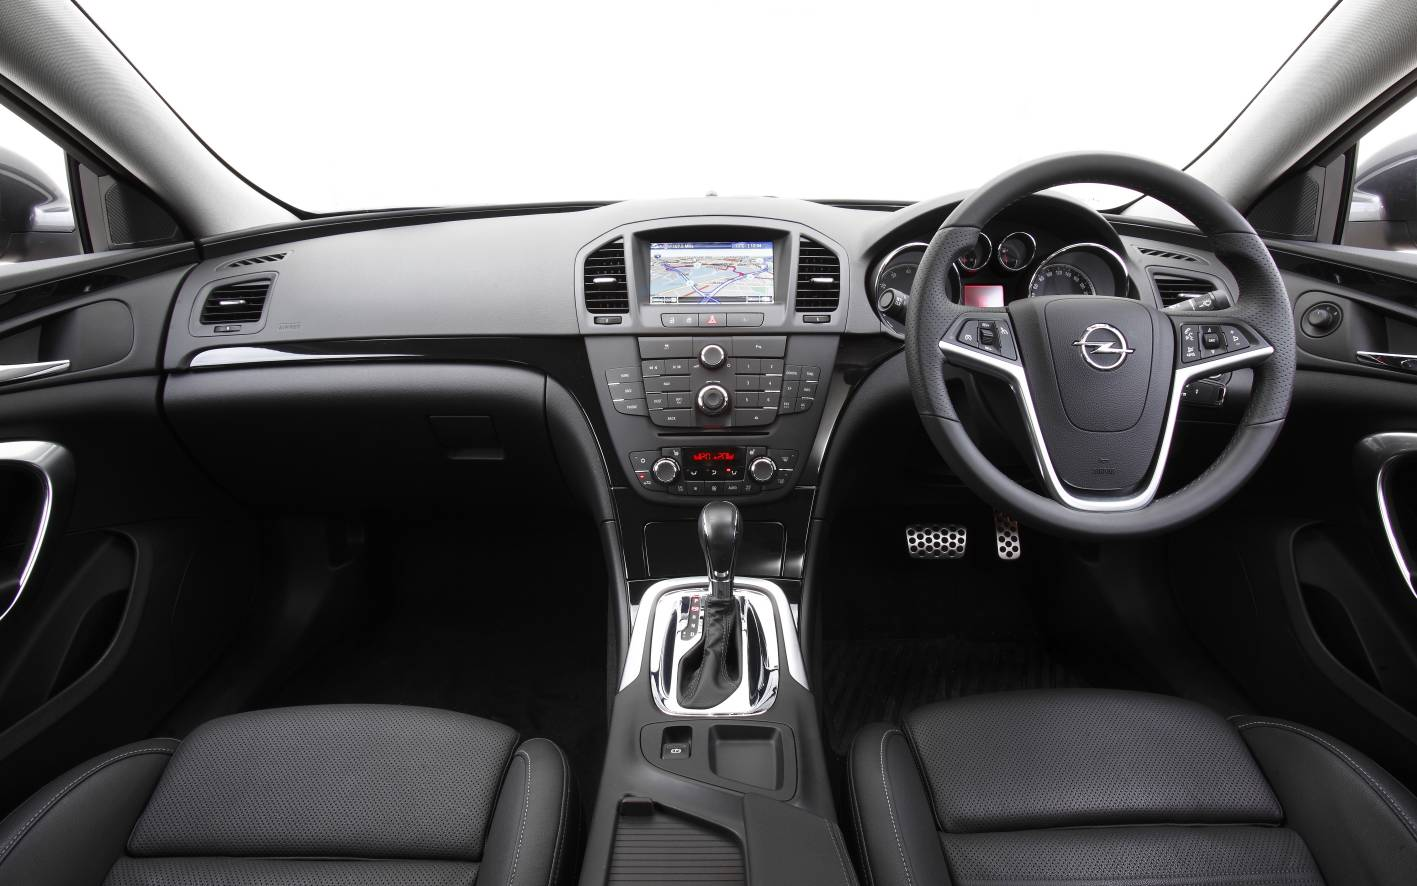 Vauxhall Corsa together with Maxresdefault moreover High Opel Astra Sedan J R moreover Adam Opel X besides Opel Karl Ig. on opel corsa interior